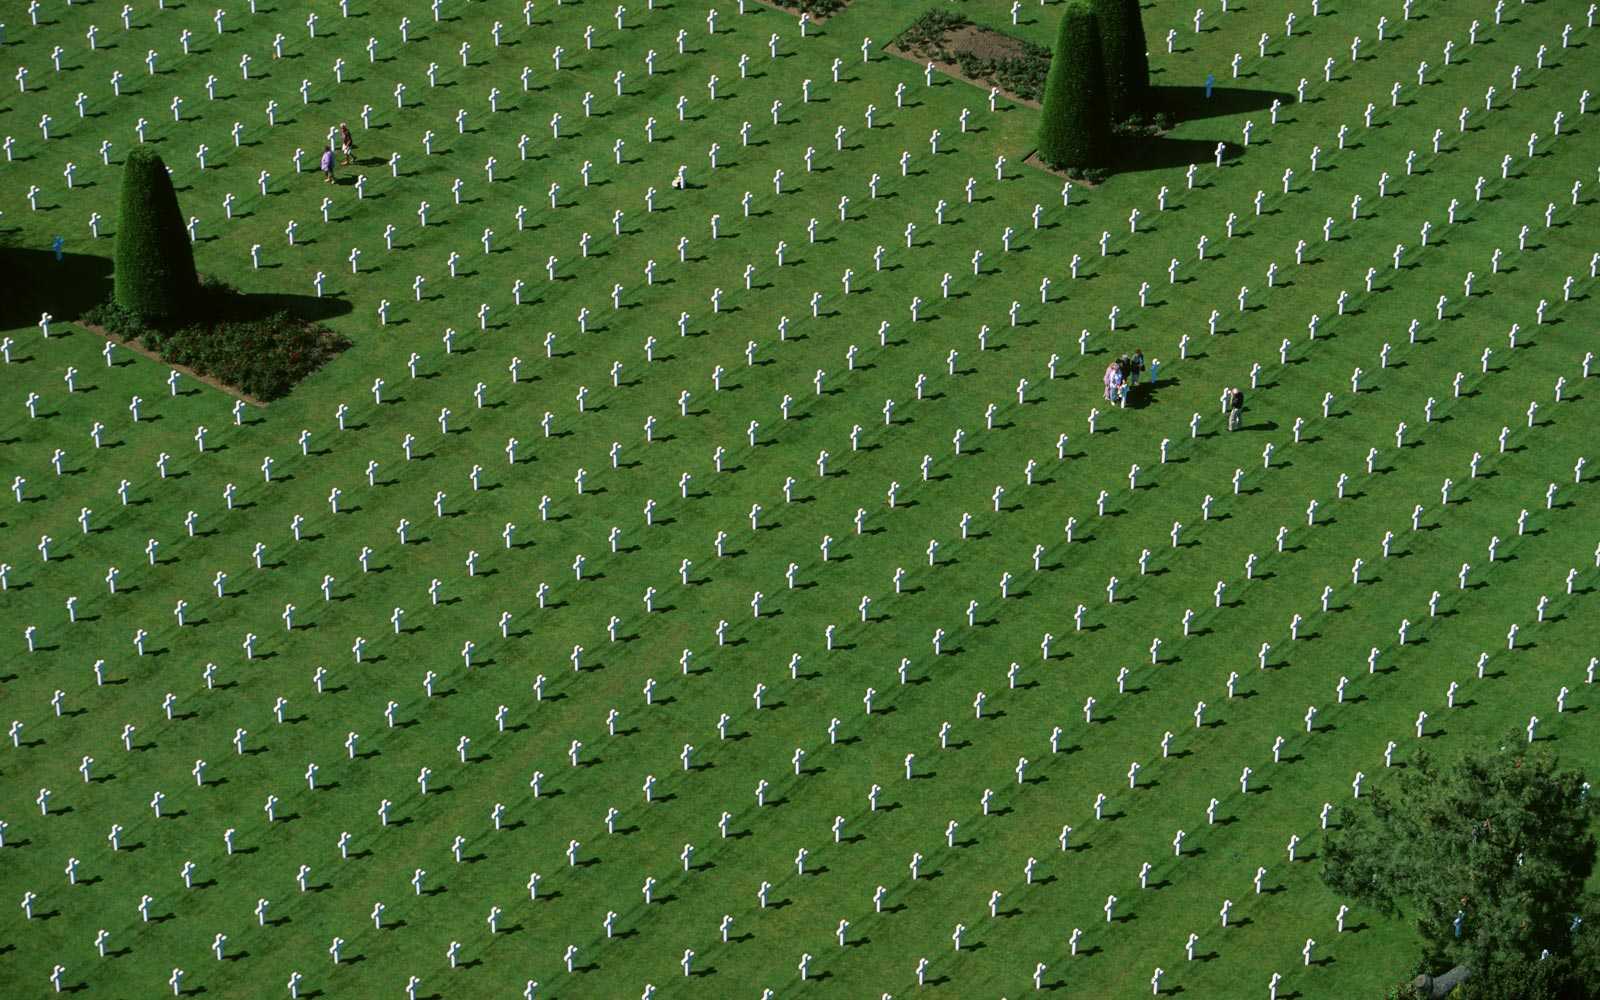 France, Colleville sur Mer, aerial view of the American Cemetery